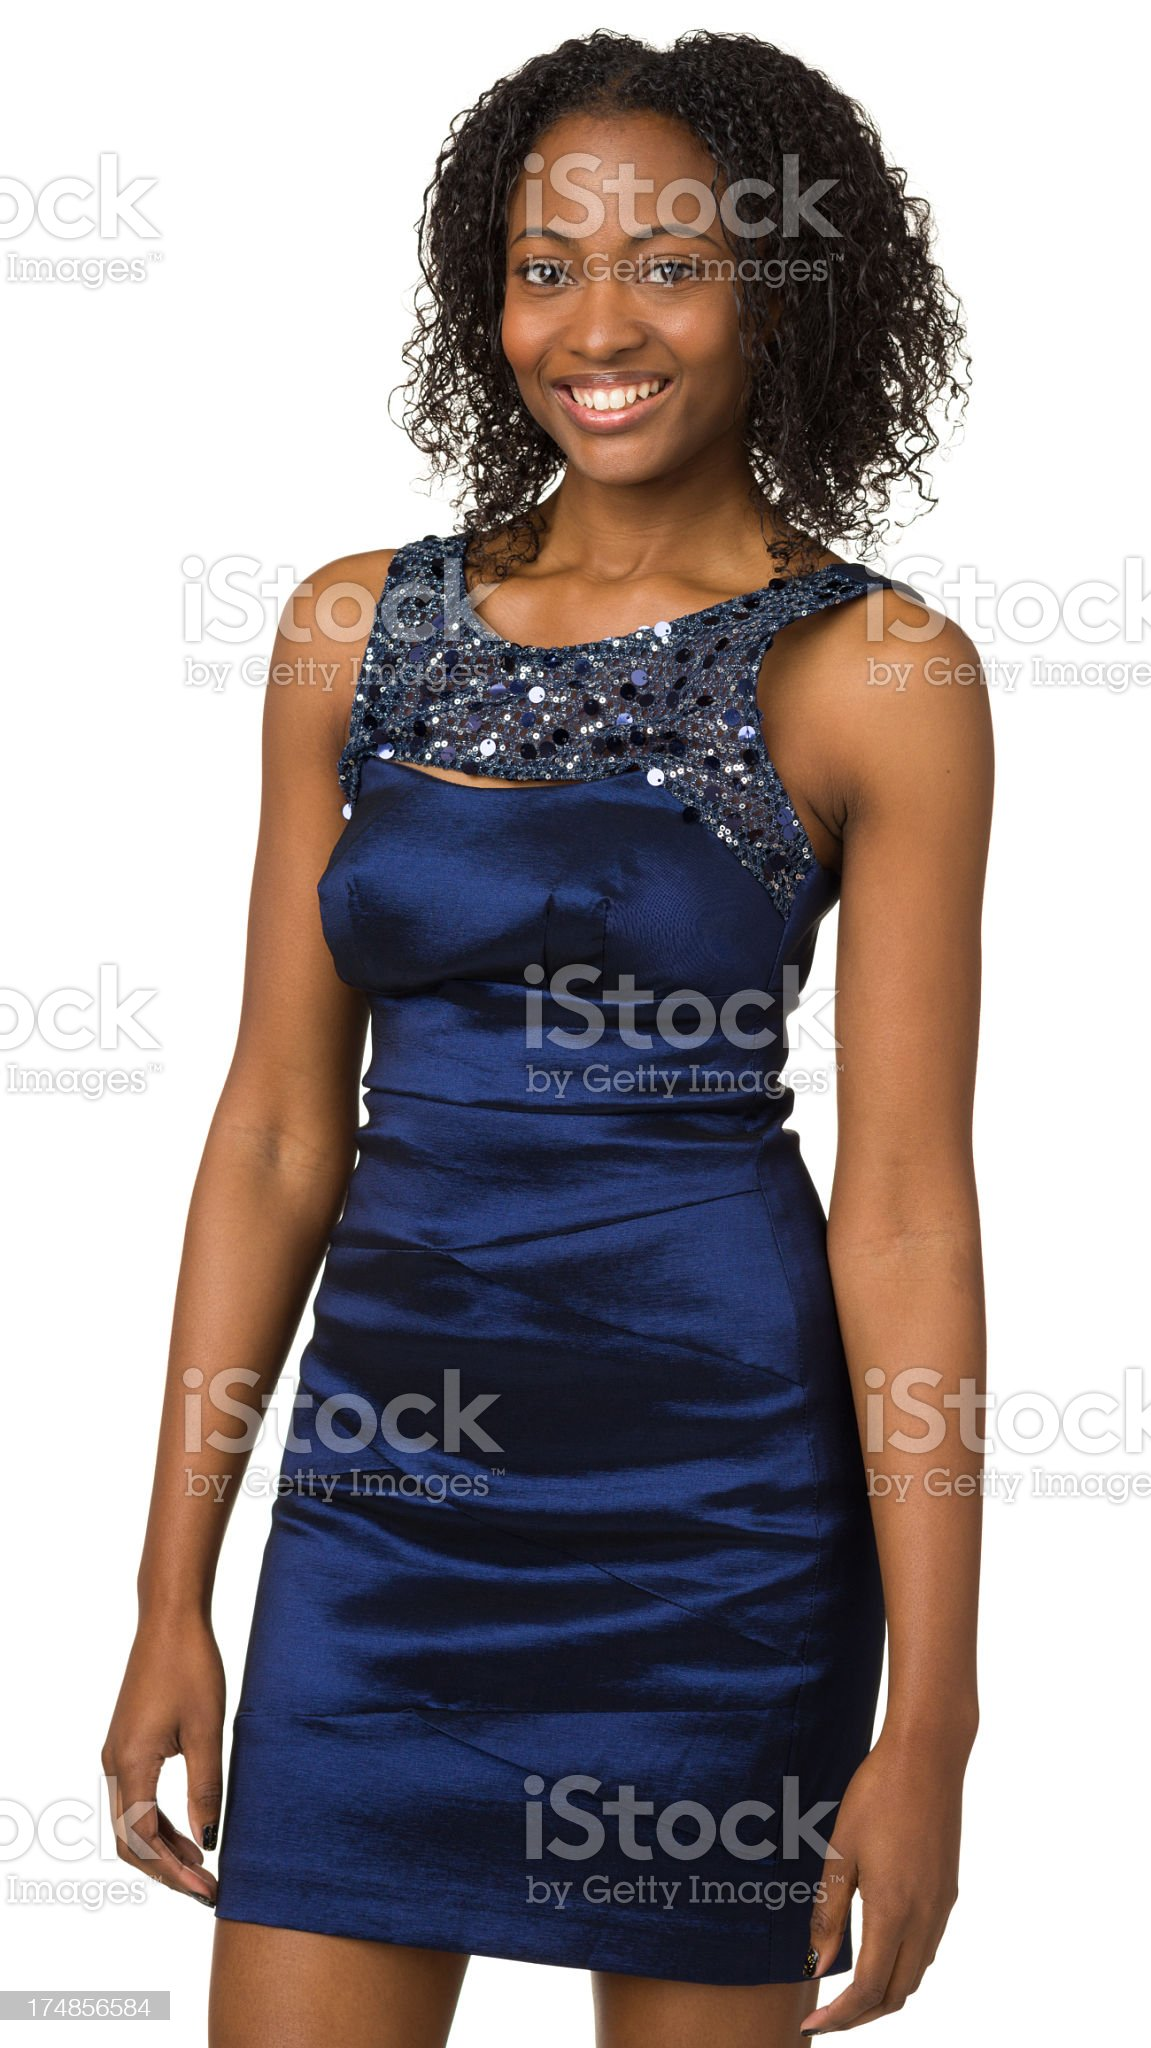 Smiling Young Woman In Blue Dress royalty-free stock photo